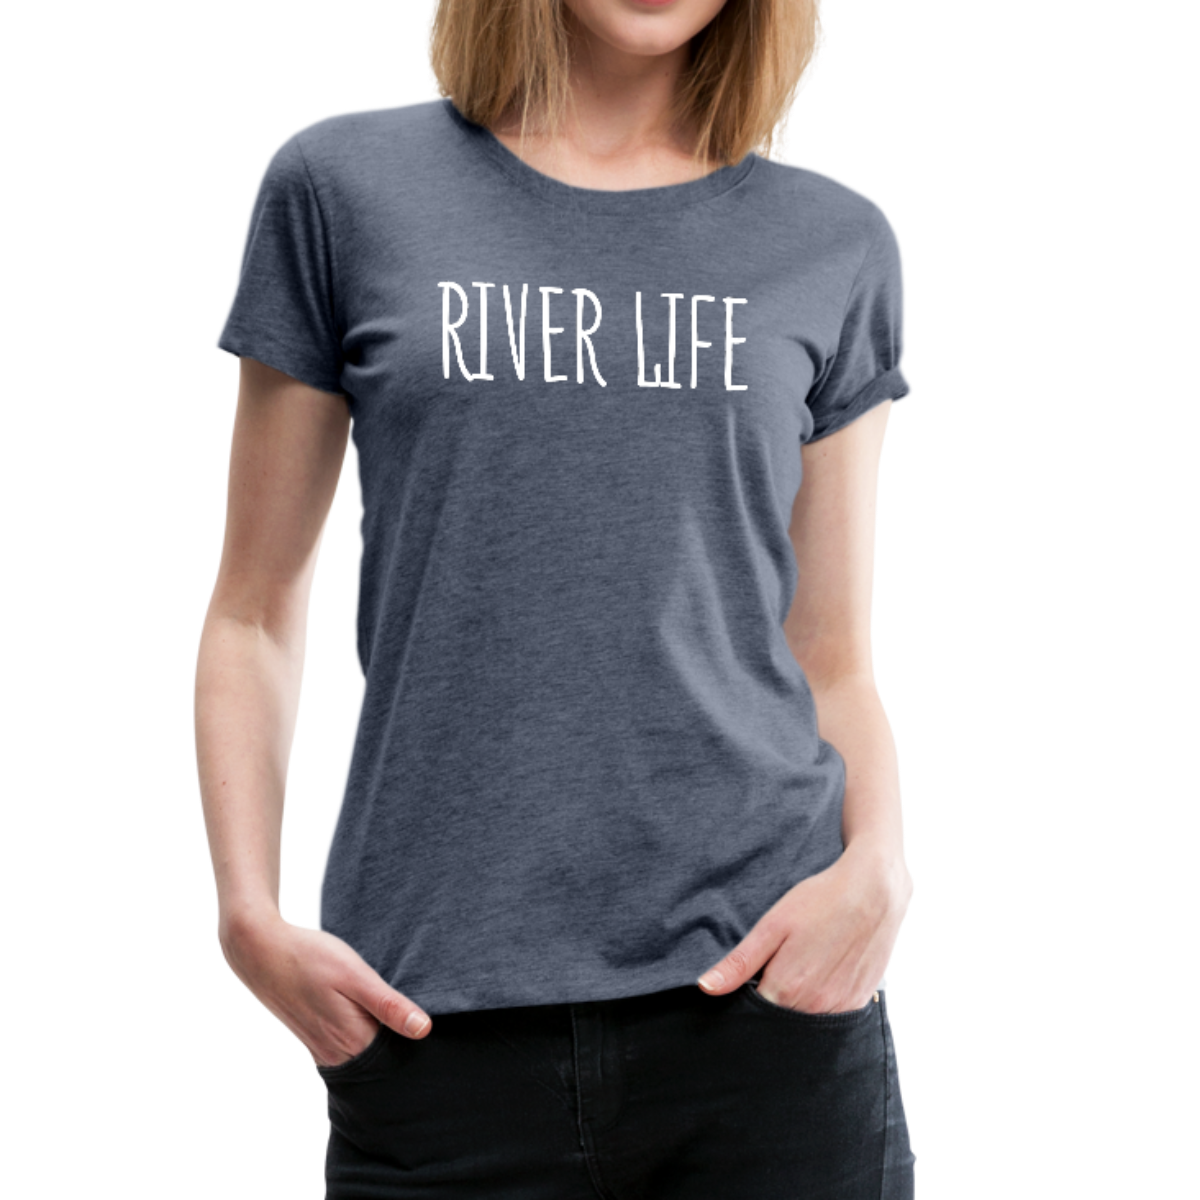 River Life-Women's 2-sided Crew Neck T